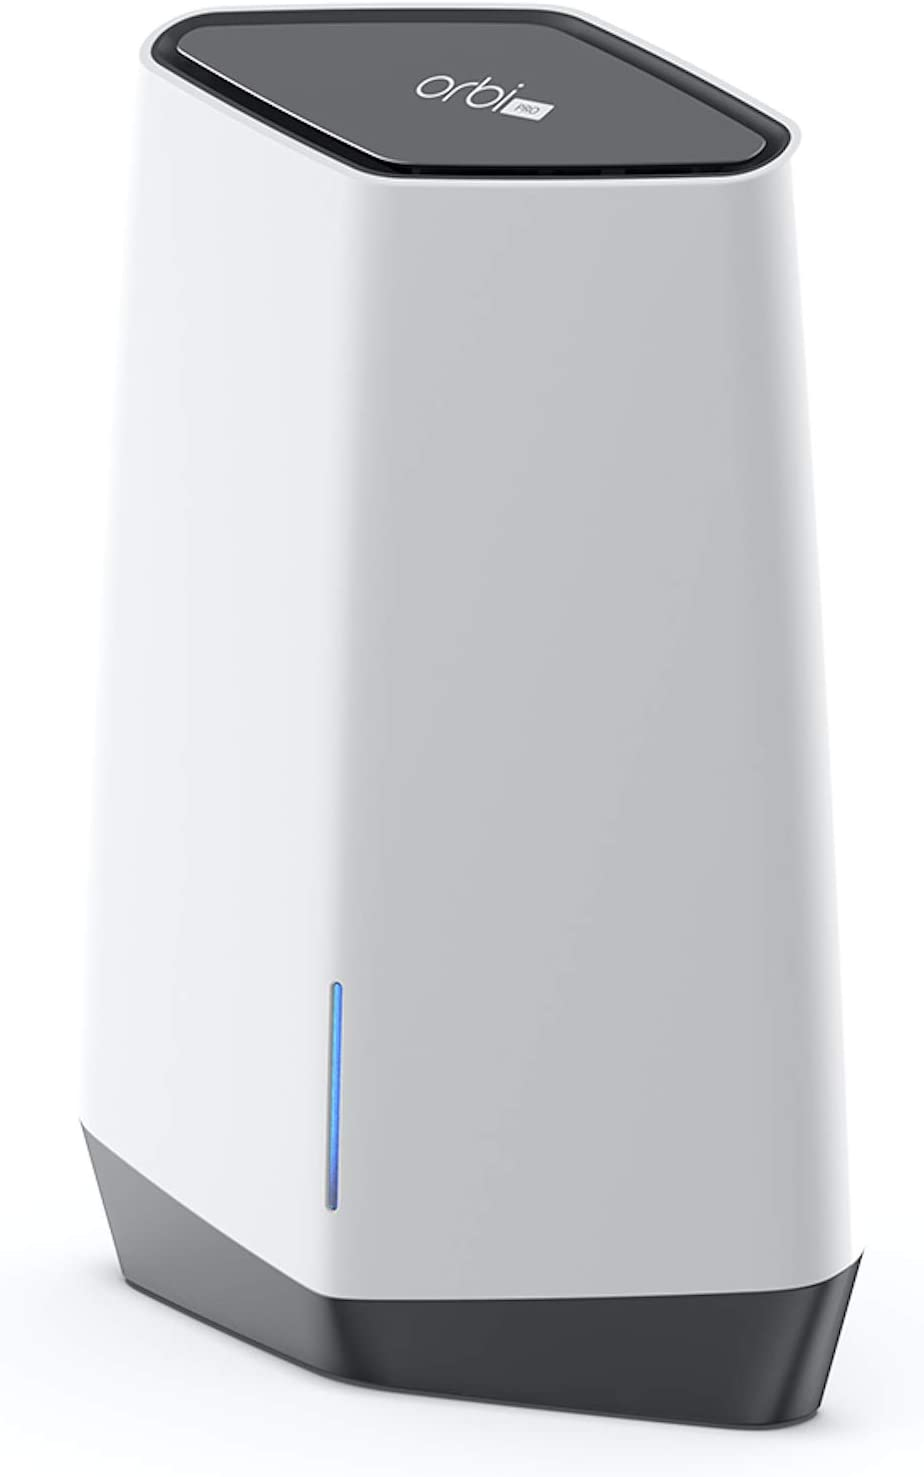 NETGEAR Orbi Pro WiFi 6 Tri-Band Mesh Add-on Satellite for Business or Home with 6Gbps Speed (SXS80) | Coverage up to 3,000 sq. ft. | Requires Orbi Pro WiFi 6 Router